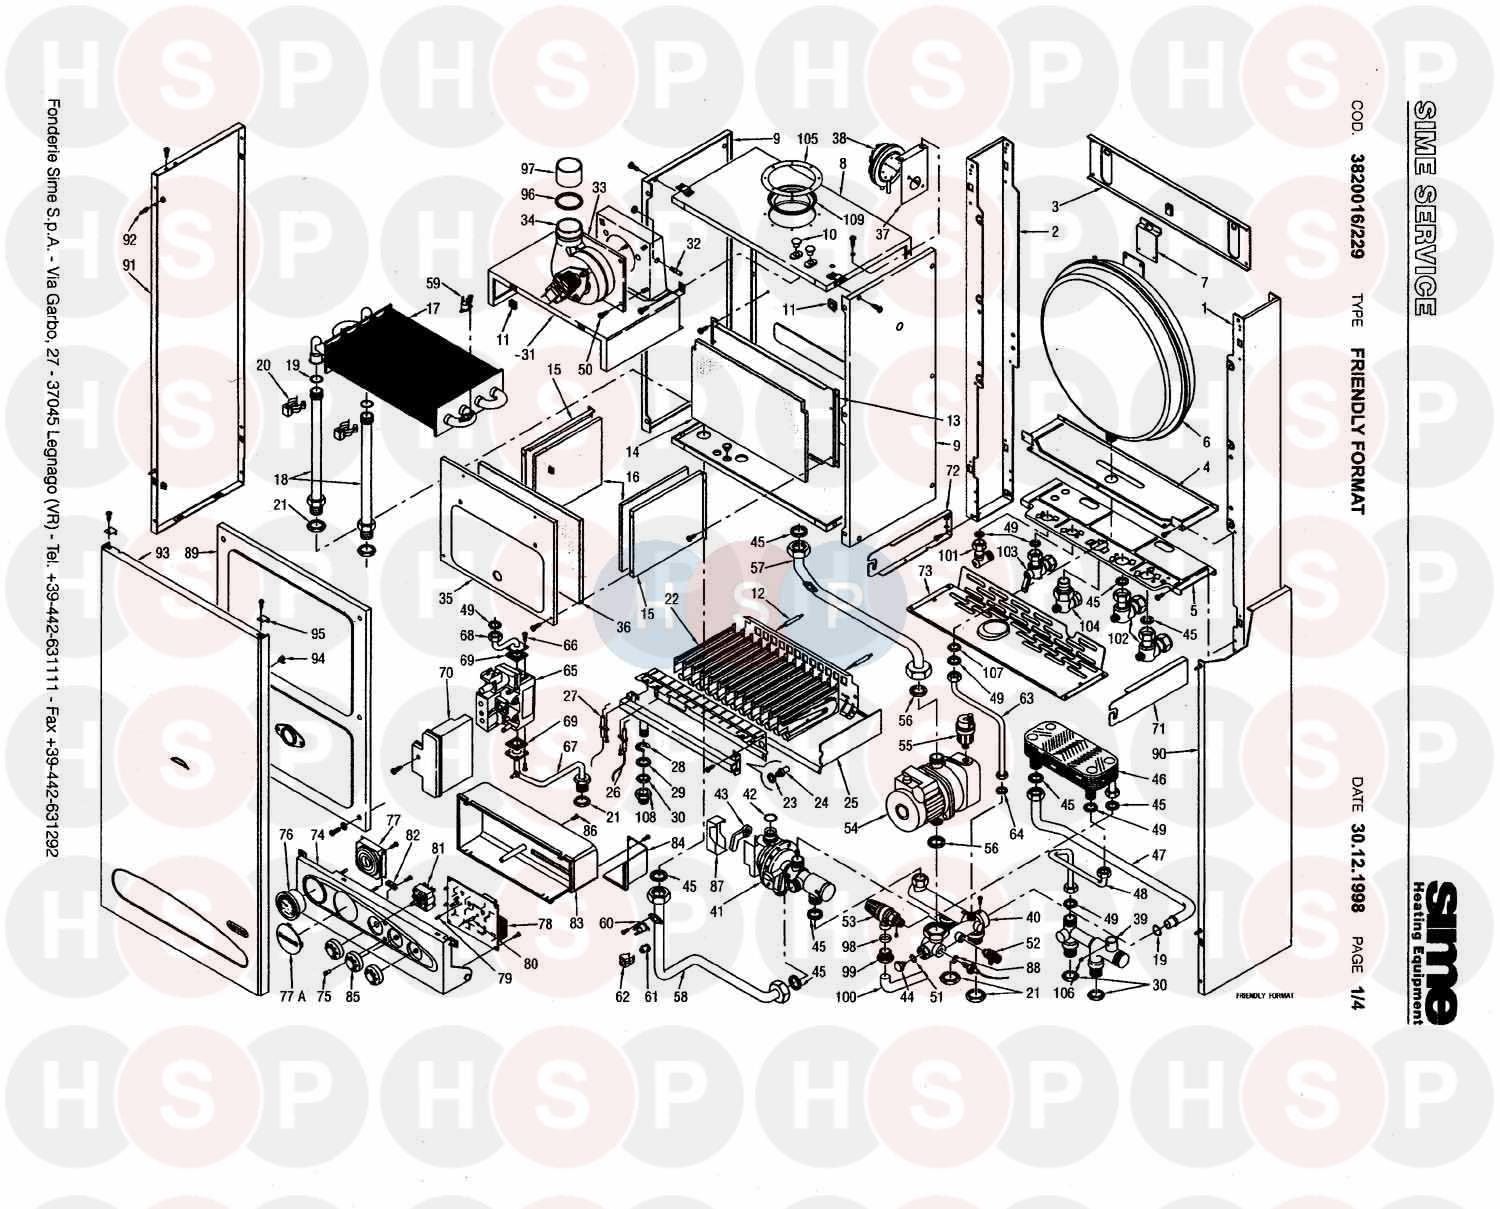 Awe Inspiring Sime Friendly Format 80 Boiler Assembly Diagram Heating Spare Parts Wiring 101 Kniepimsautoservicenl